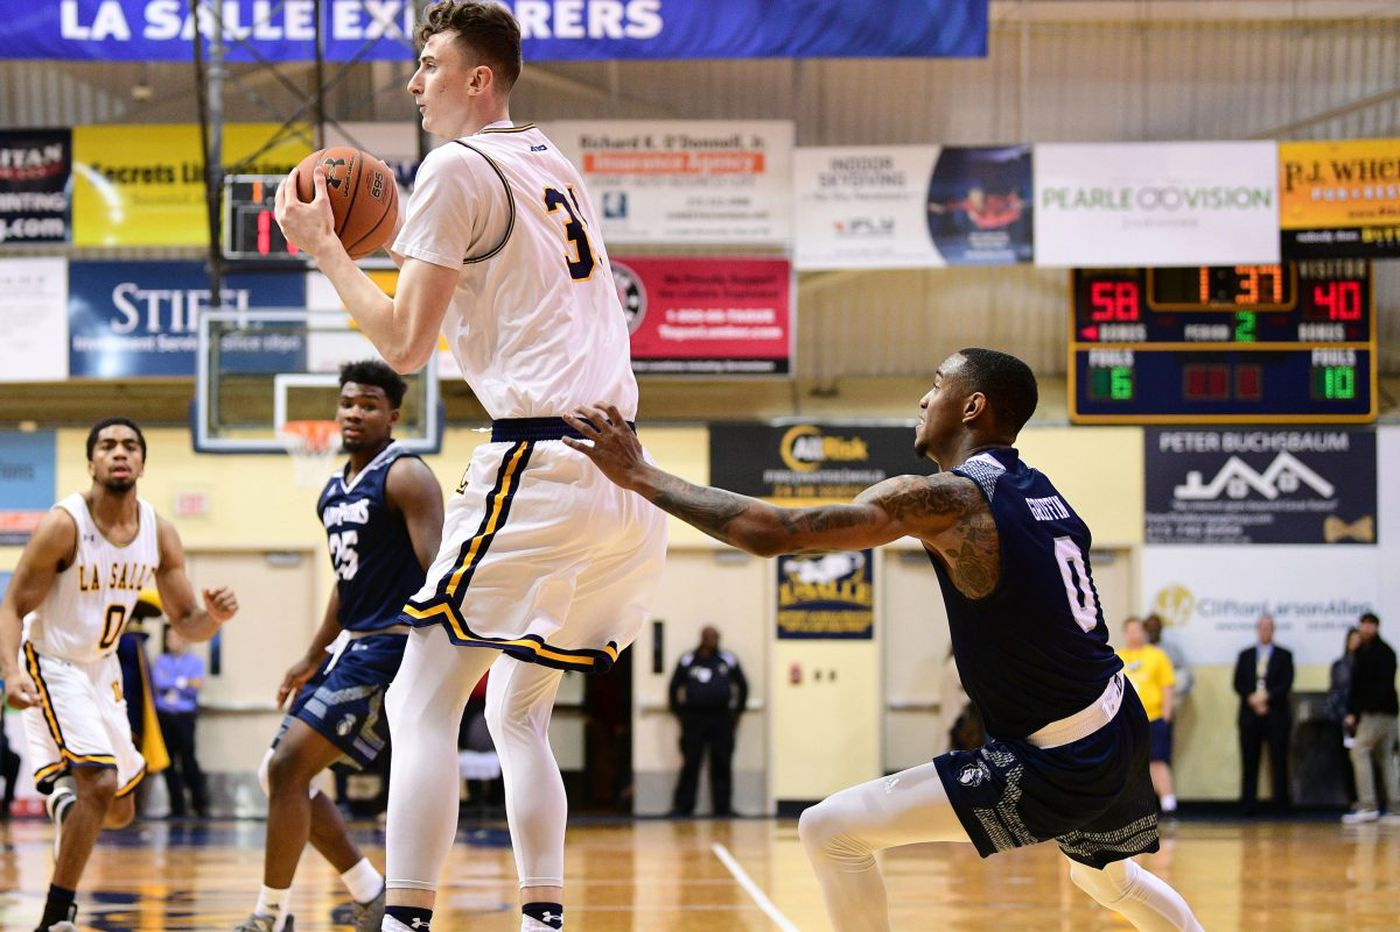 La Salle's Cian Sullivan, an Ireland native, learning the ways of American college basketball